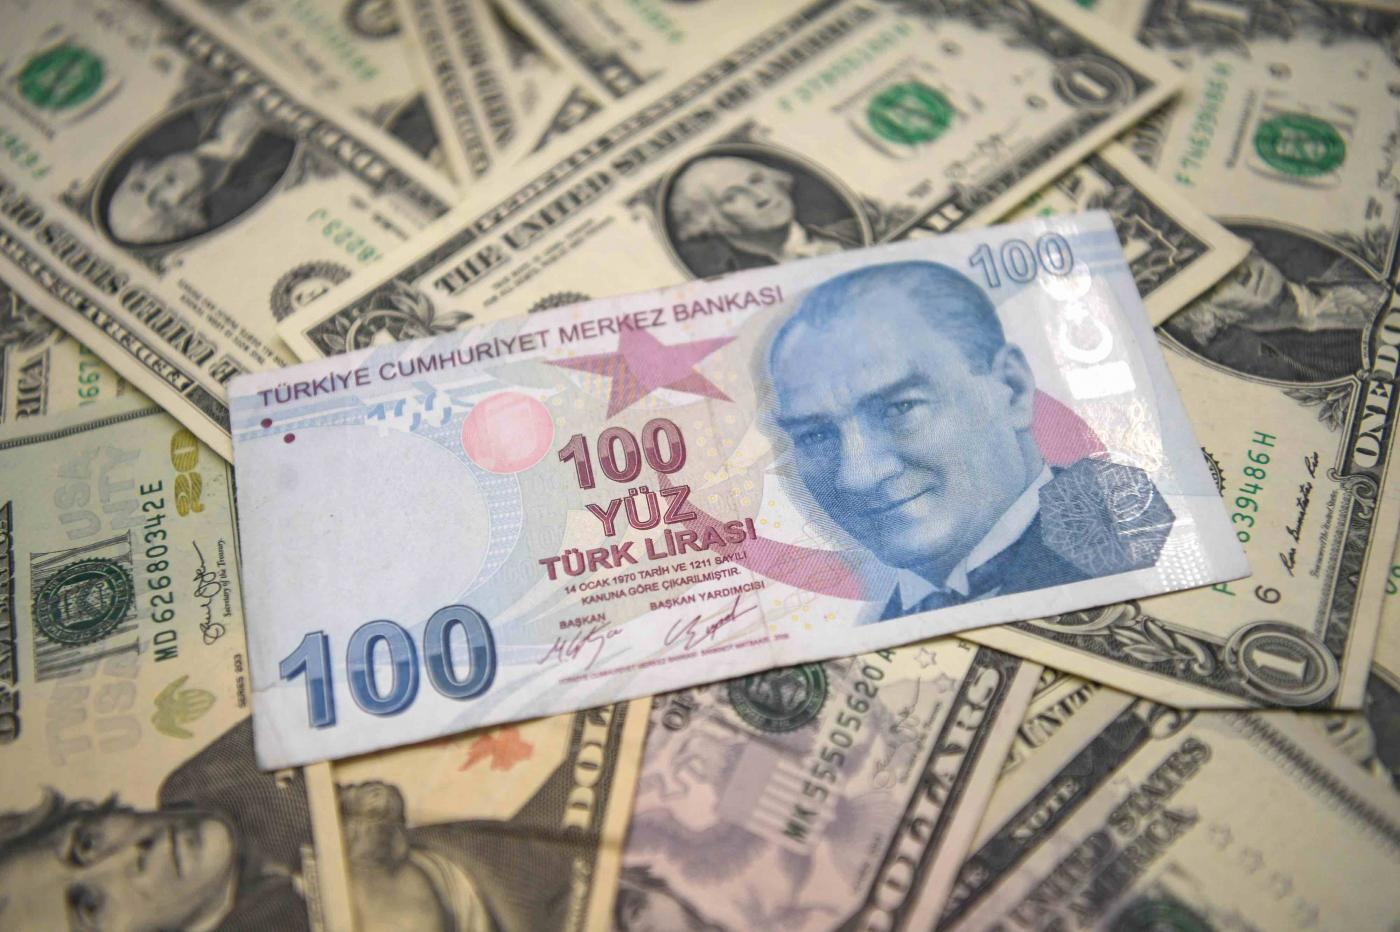 Turkish banks association pledges cooperation to curb depreciation of lira